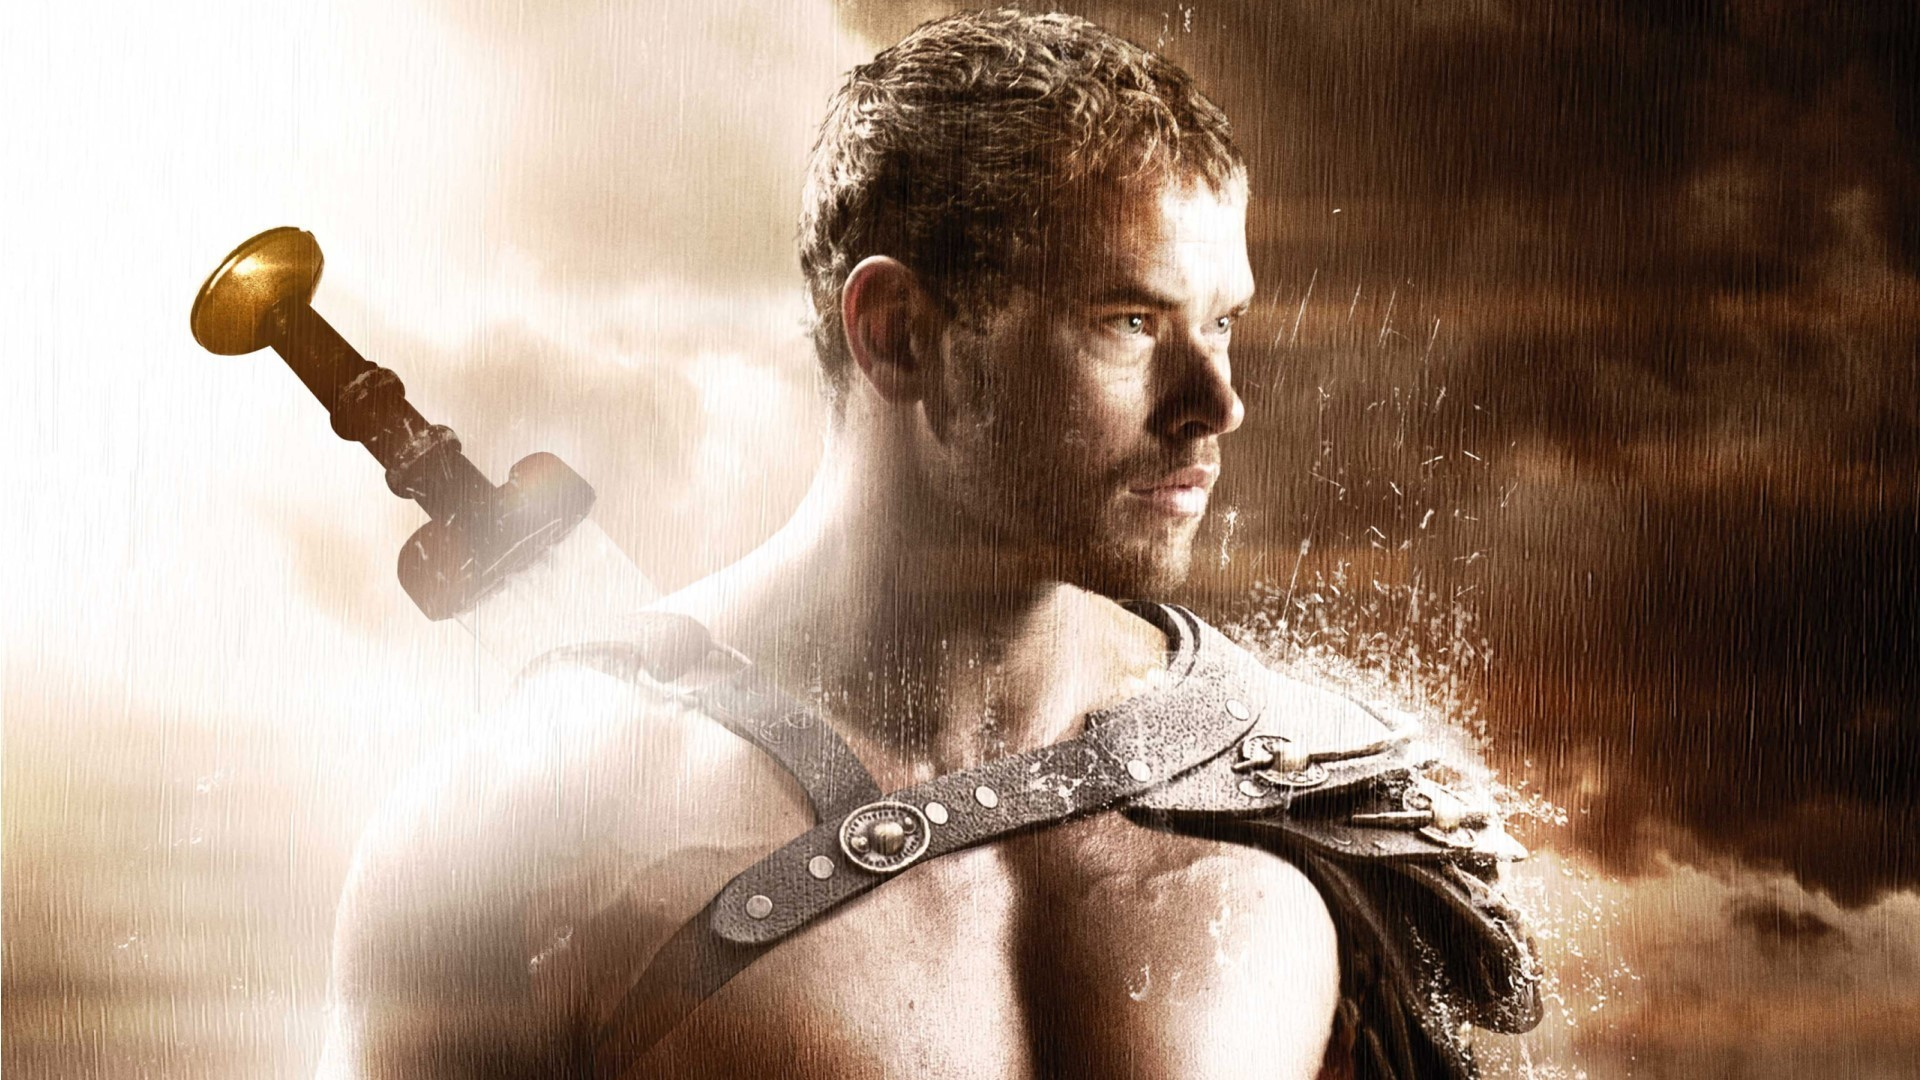 Kellan-Lutz-Hercules-2014-Movie-HD-Wallpaper